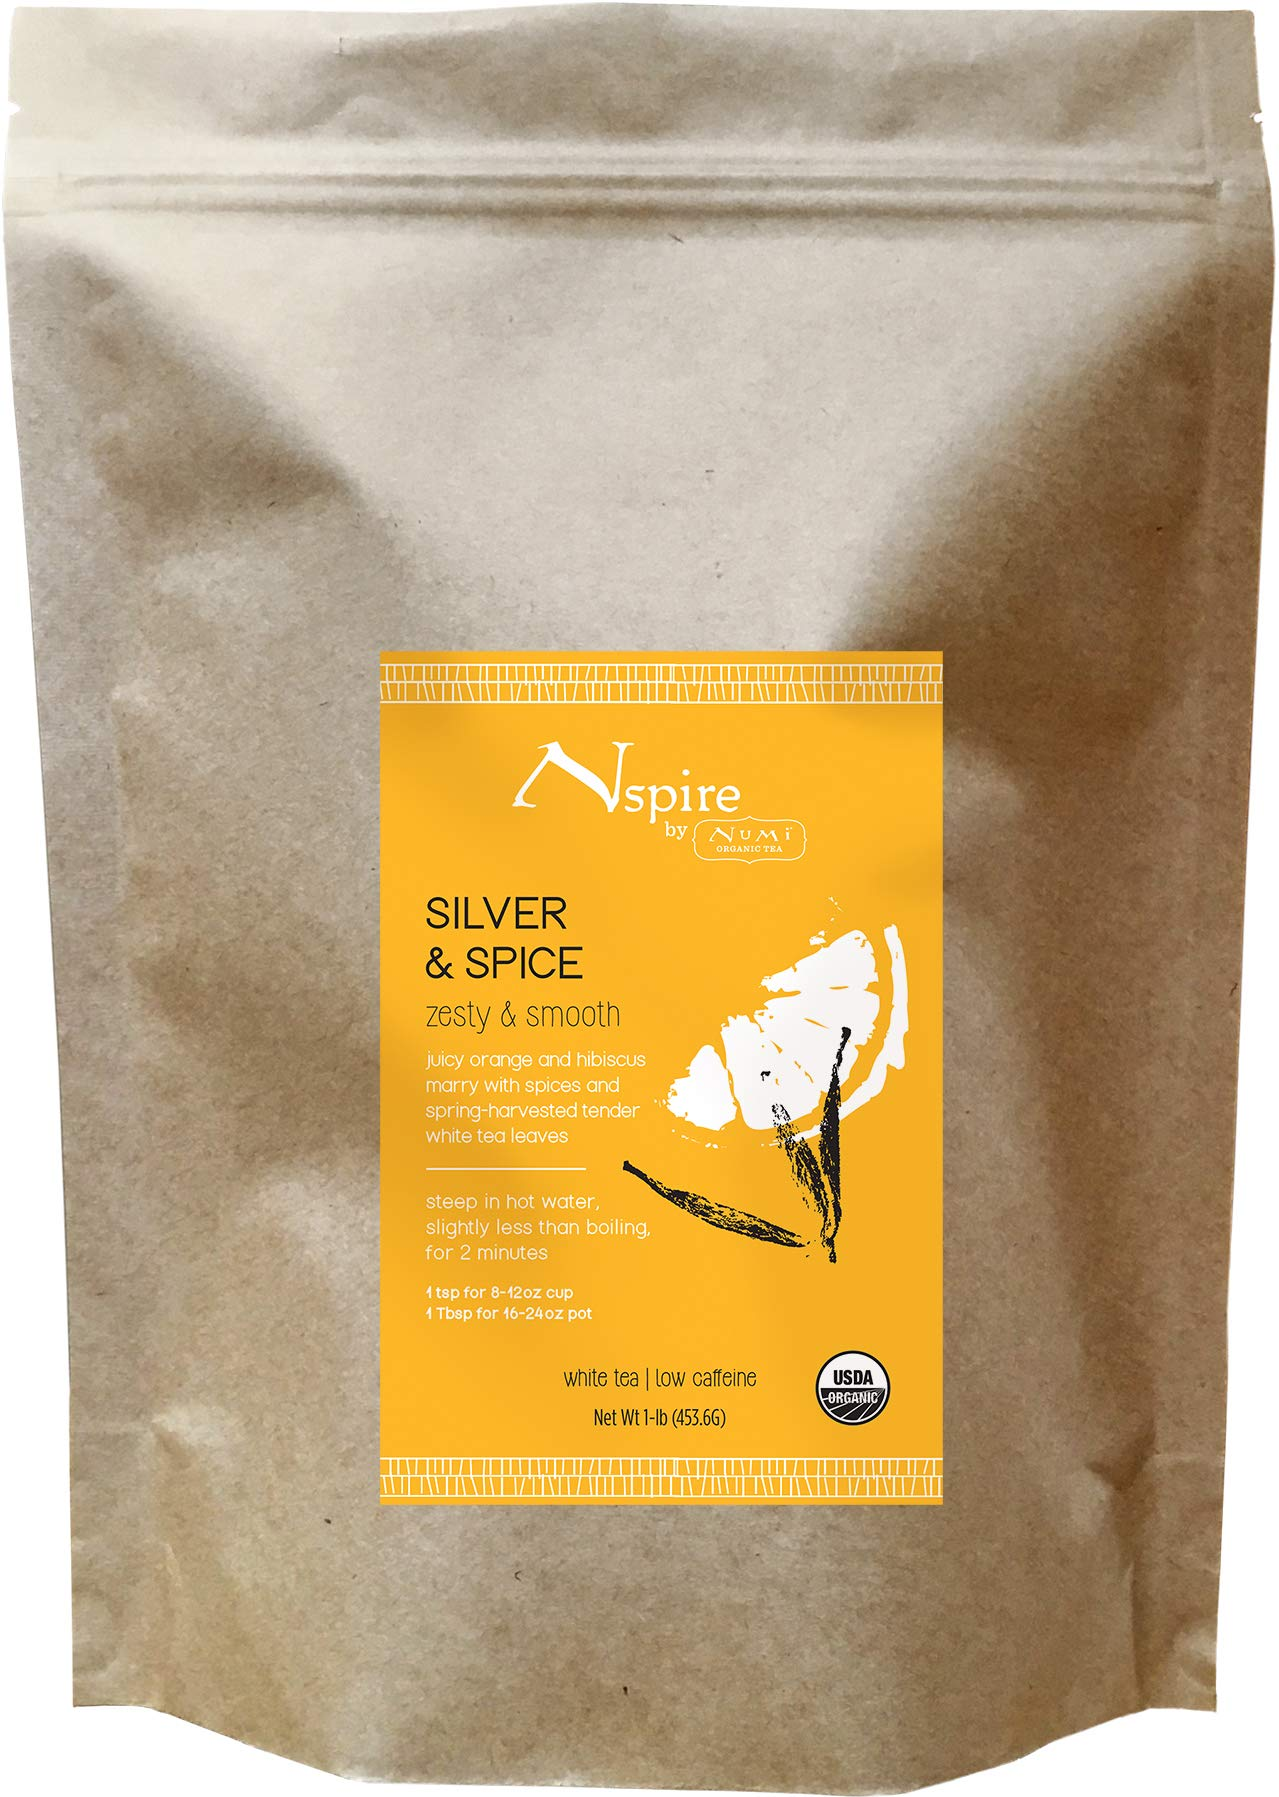 Nspire by Numi Organic Tea Silver & Spice, 16 Ounce Pouch, Loose Leaf White Tea